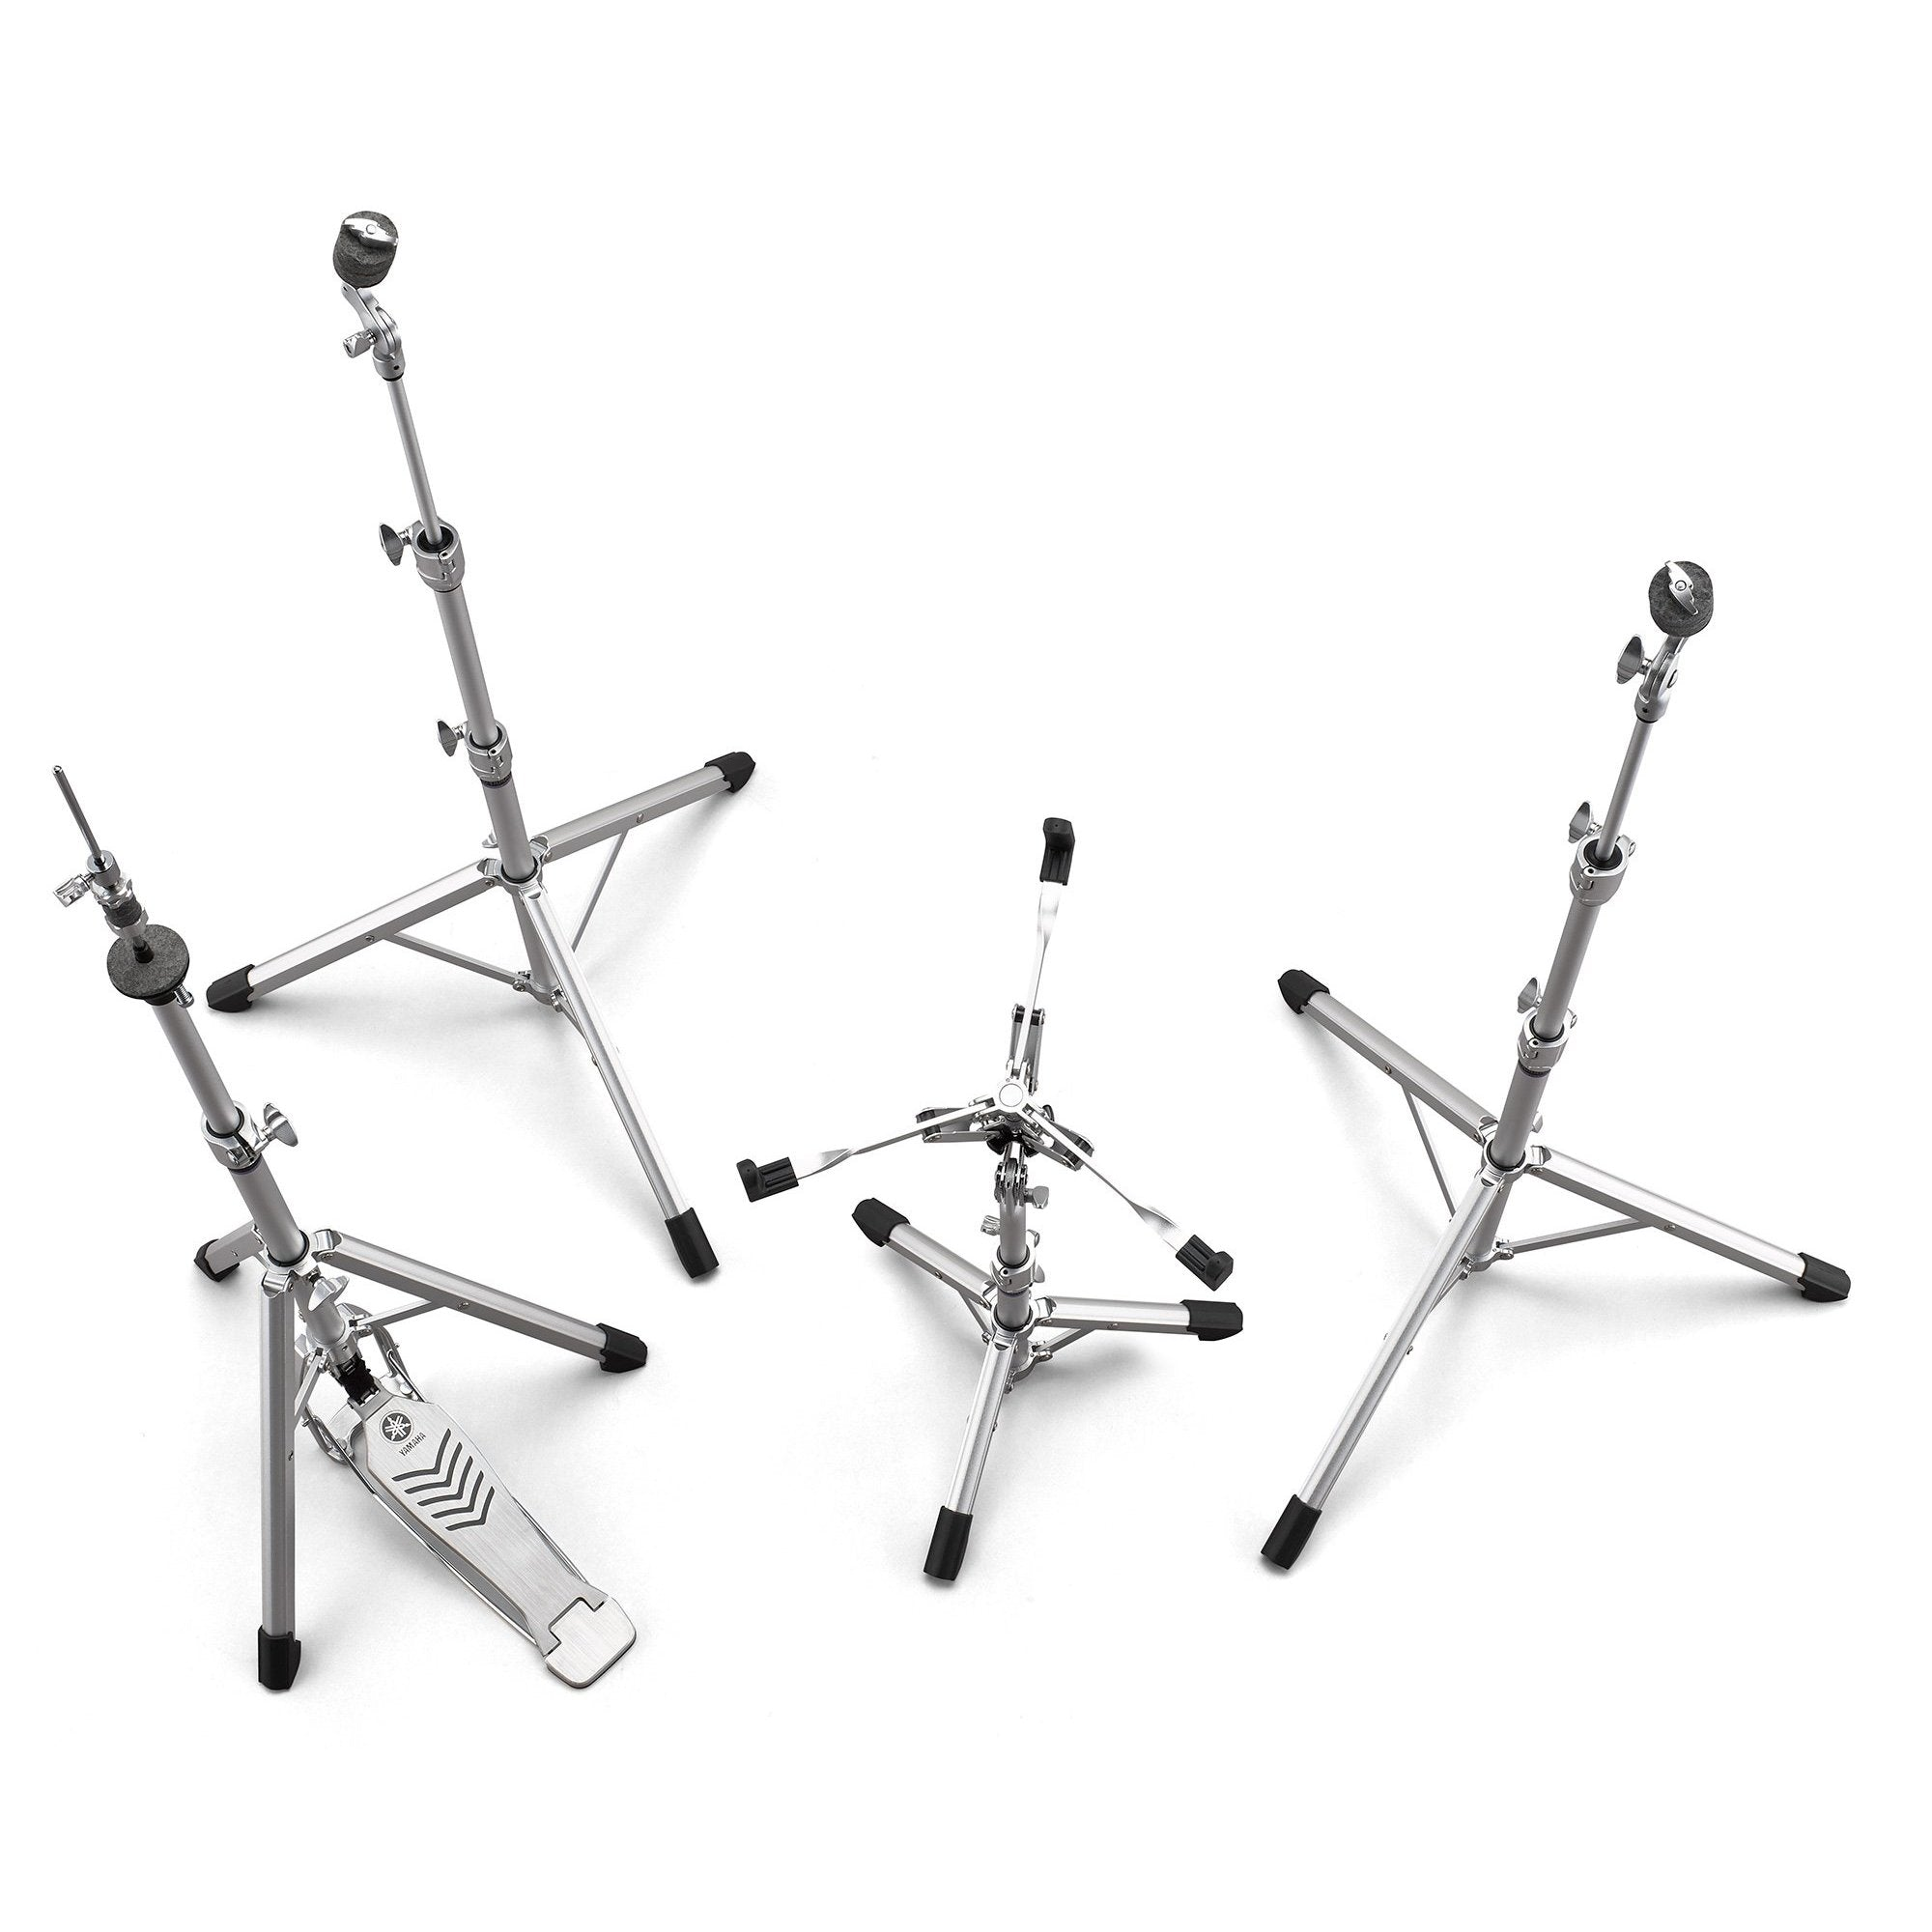 Yamaha - HW3 CROSS TOWN - Advanced Lightweight Hardware Set-Percussion-Yamaha-Music Elements